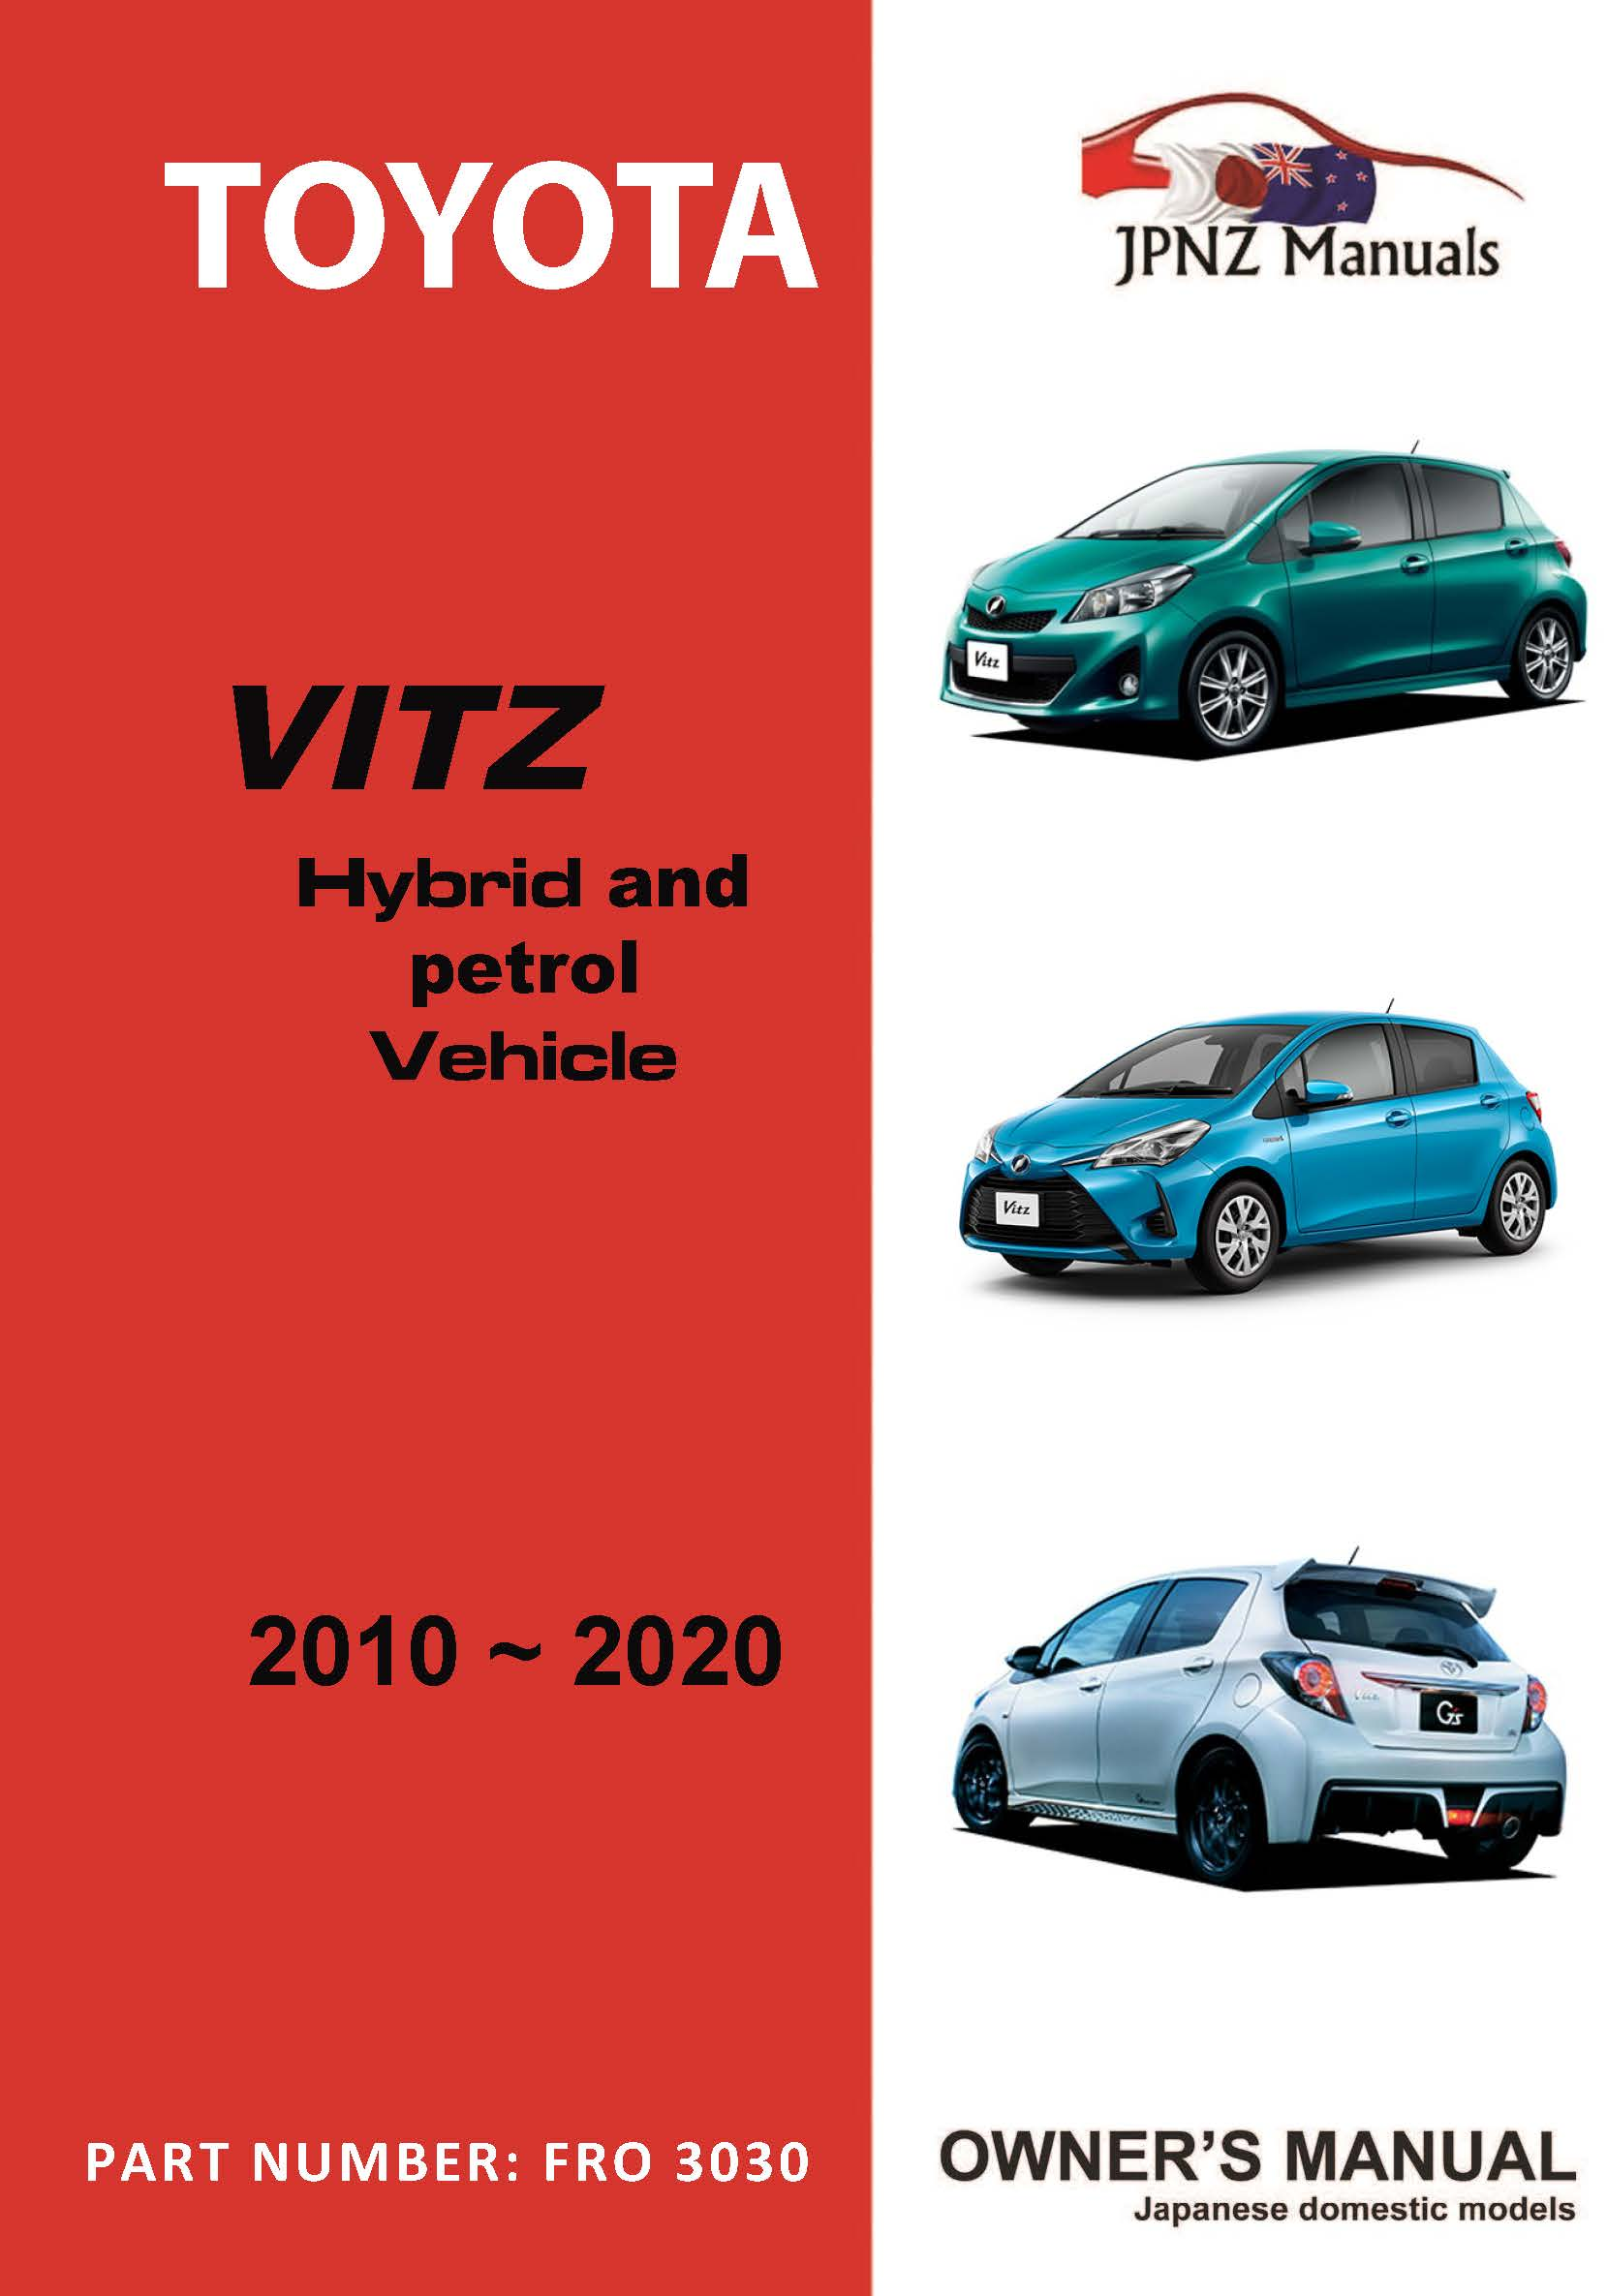 Toyota - Vitz owners user manual in English 2010-2020 Petrol and Hybrid Models